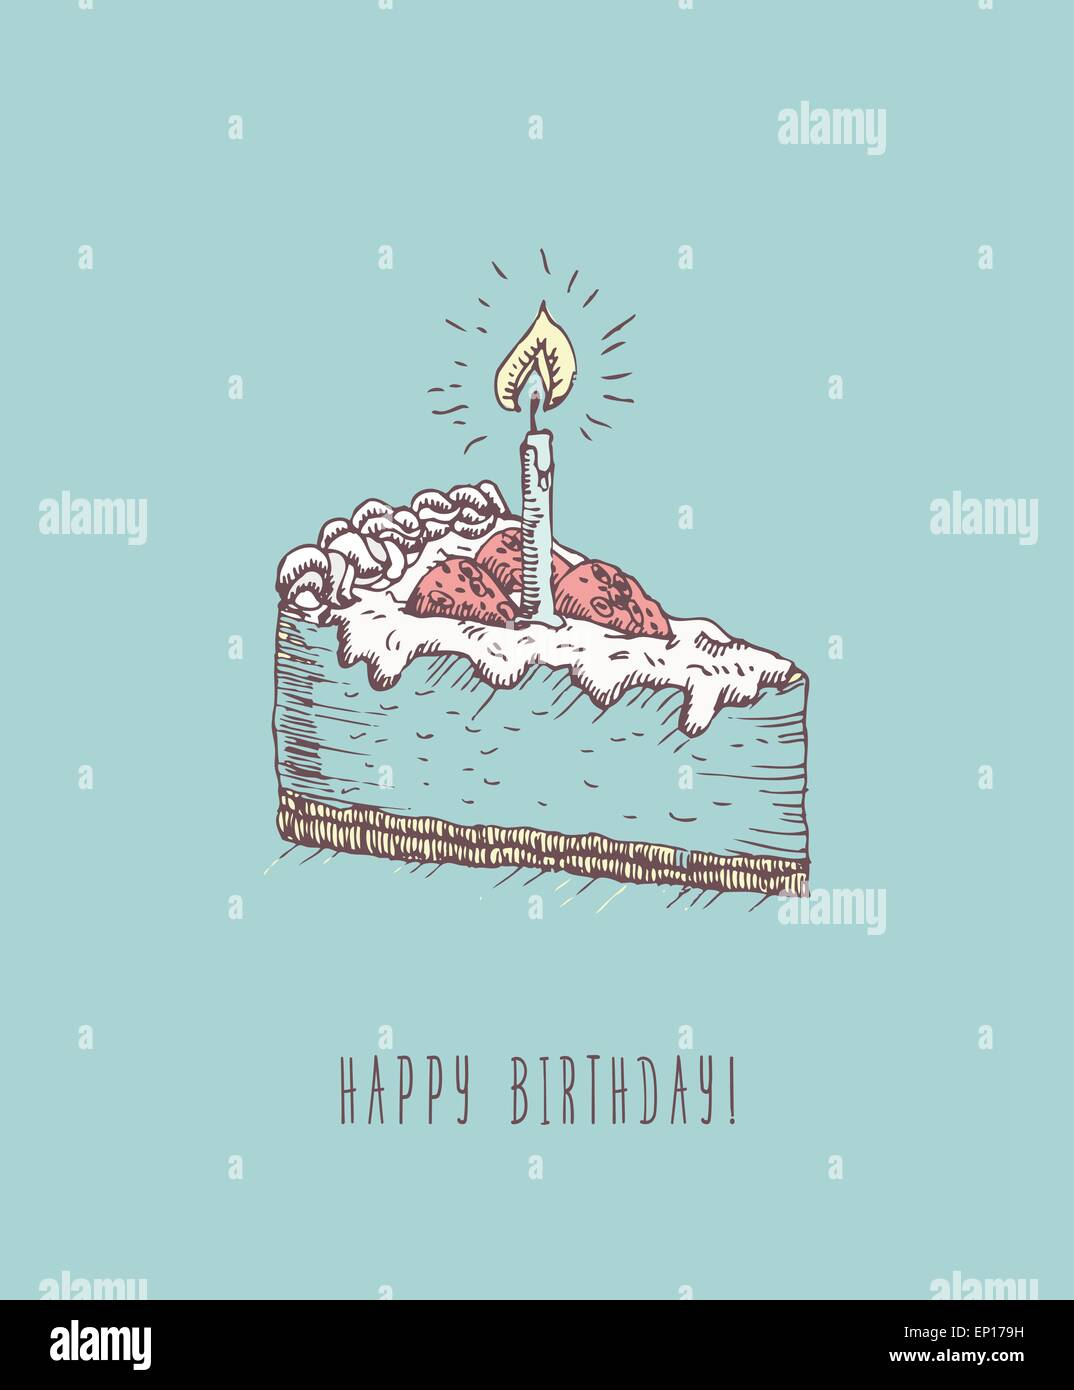 Birthday Greeting Card With Cake In Doodle Design Hand Drawn Vector Illustration Gift